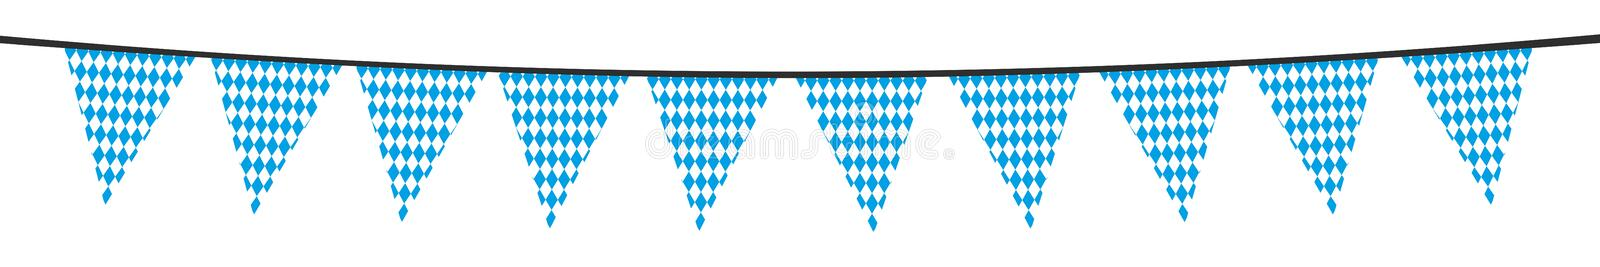 White blue bavarian party pennant. Isolated royalty free illustration